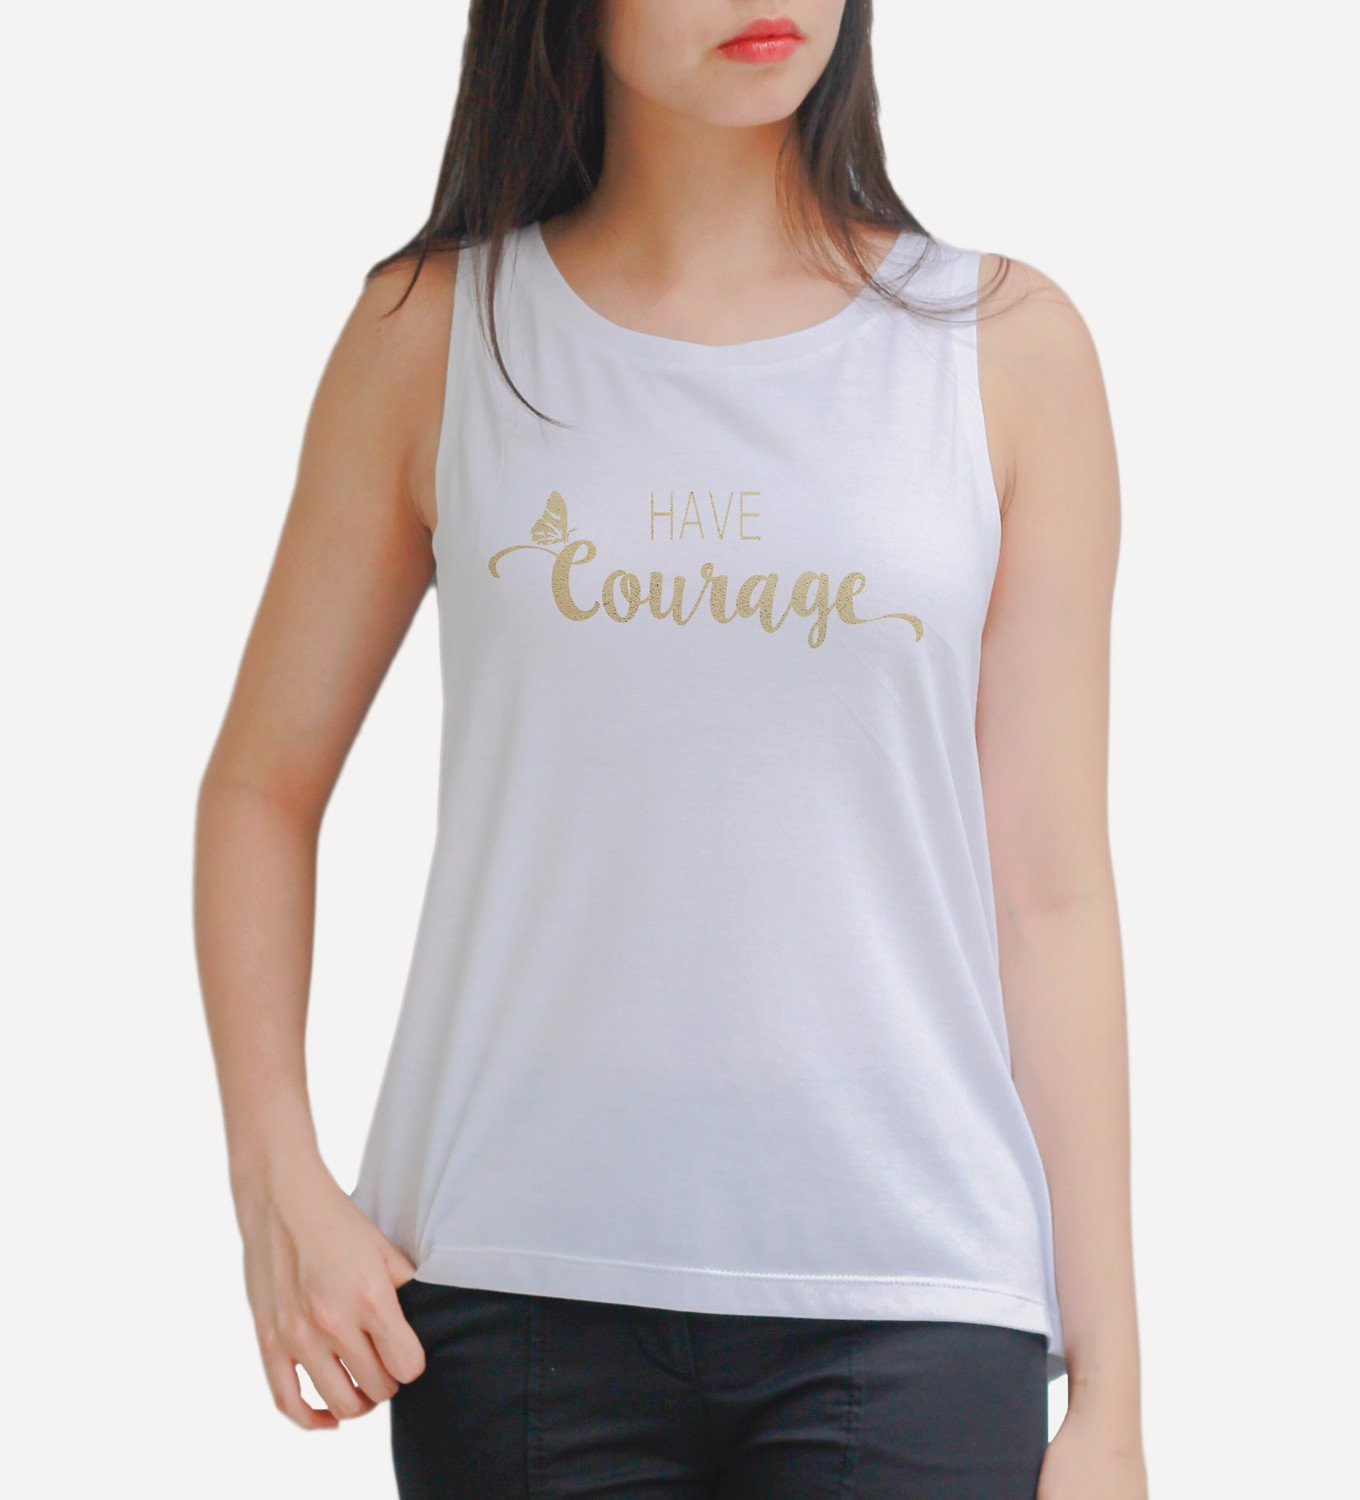 Courage Tank Top